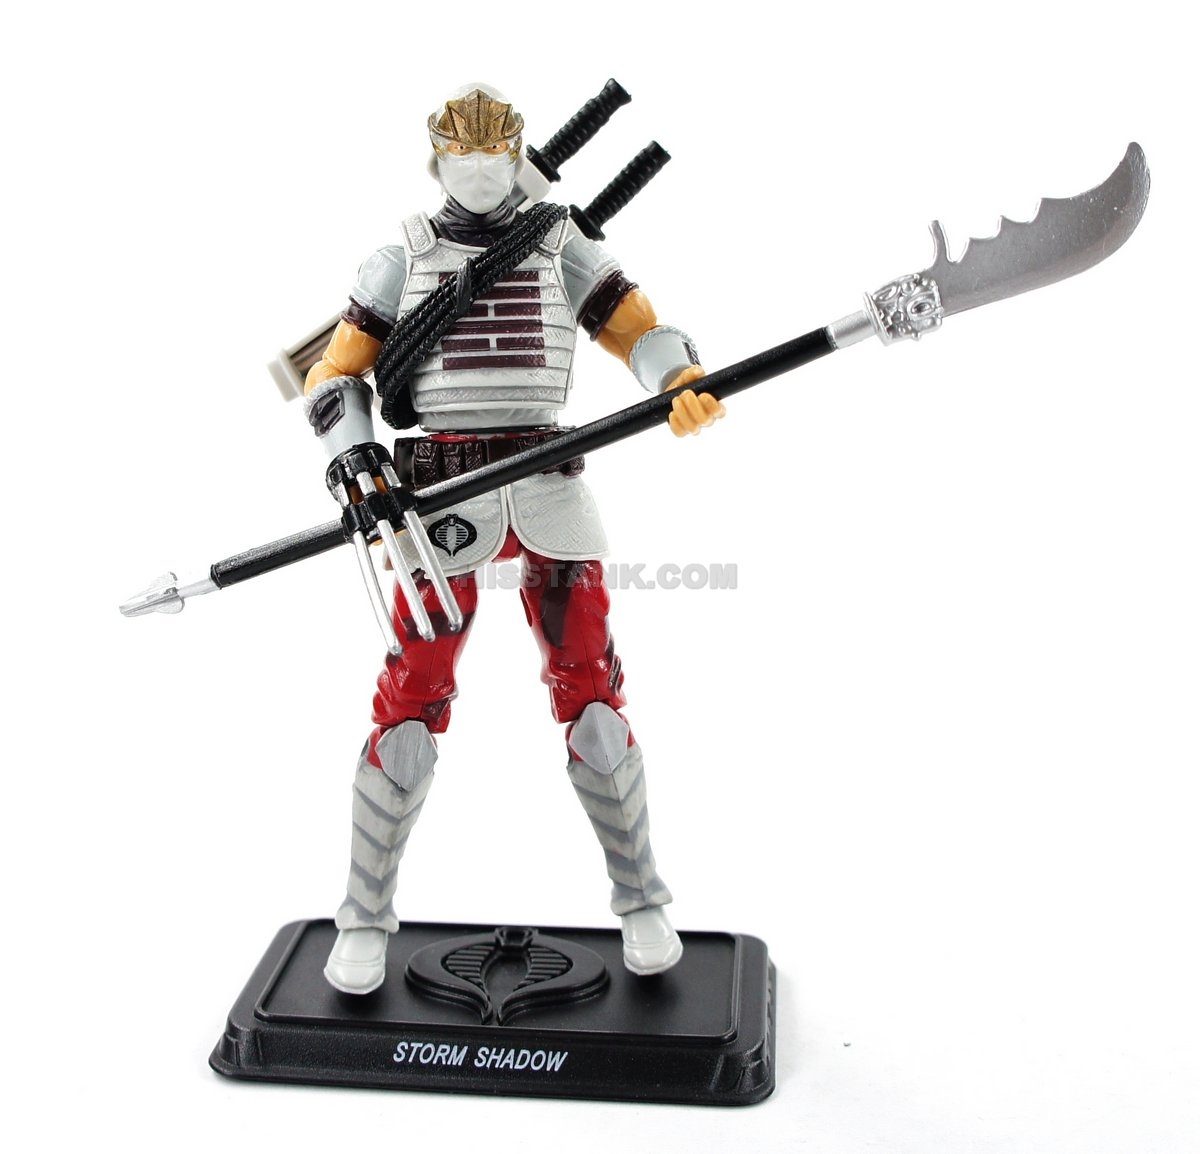 Storm Shadow Ninja Plastic Toy Sword